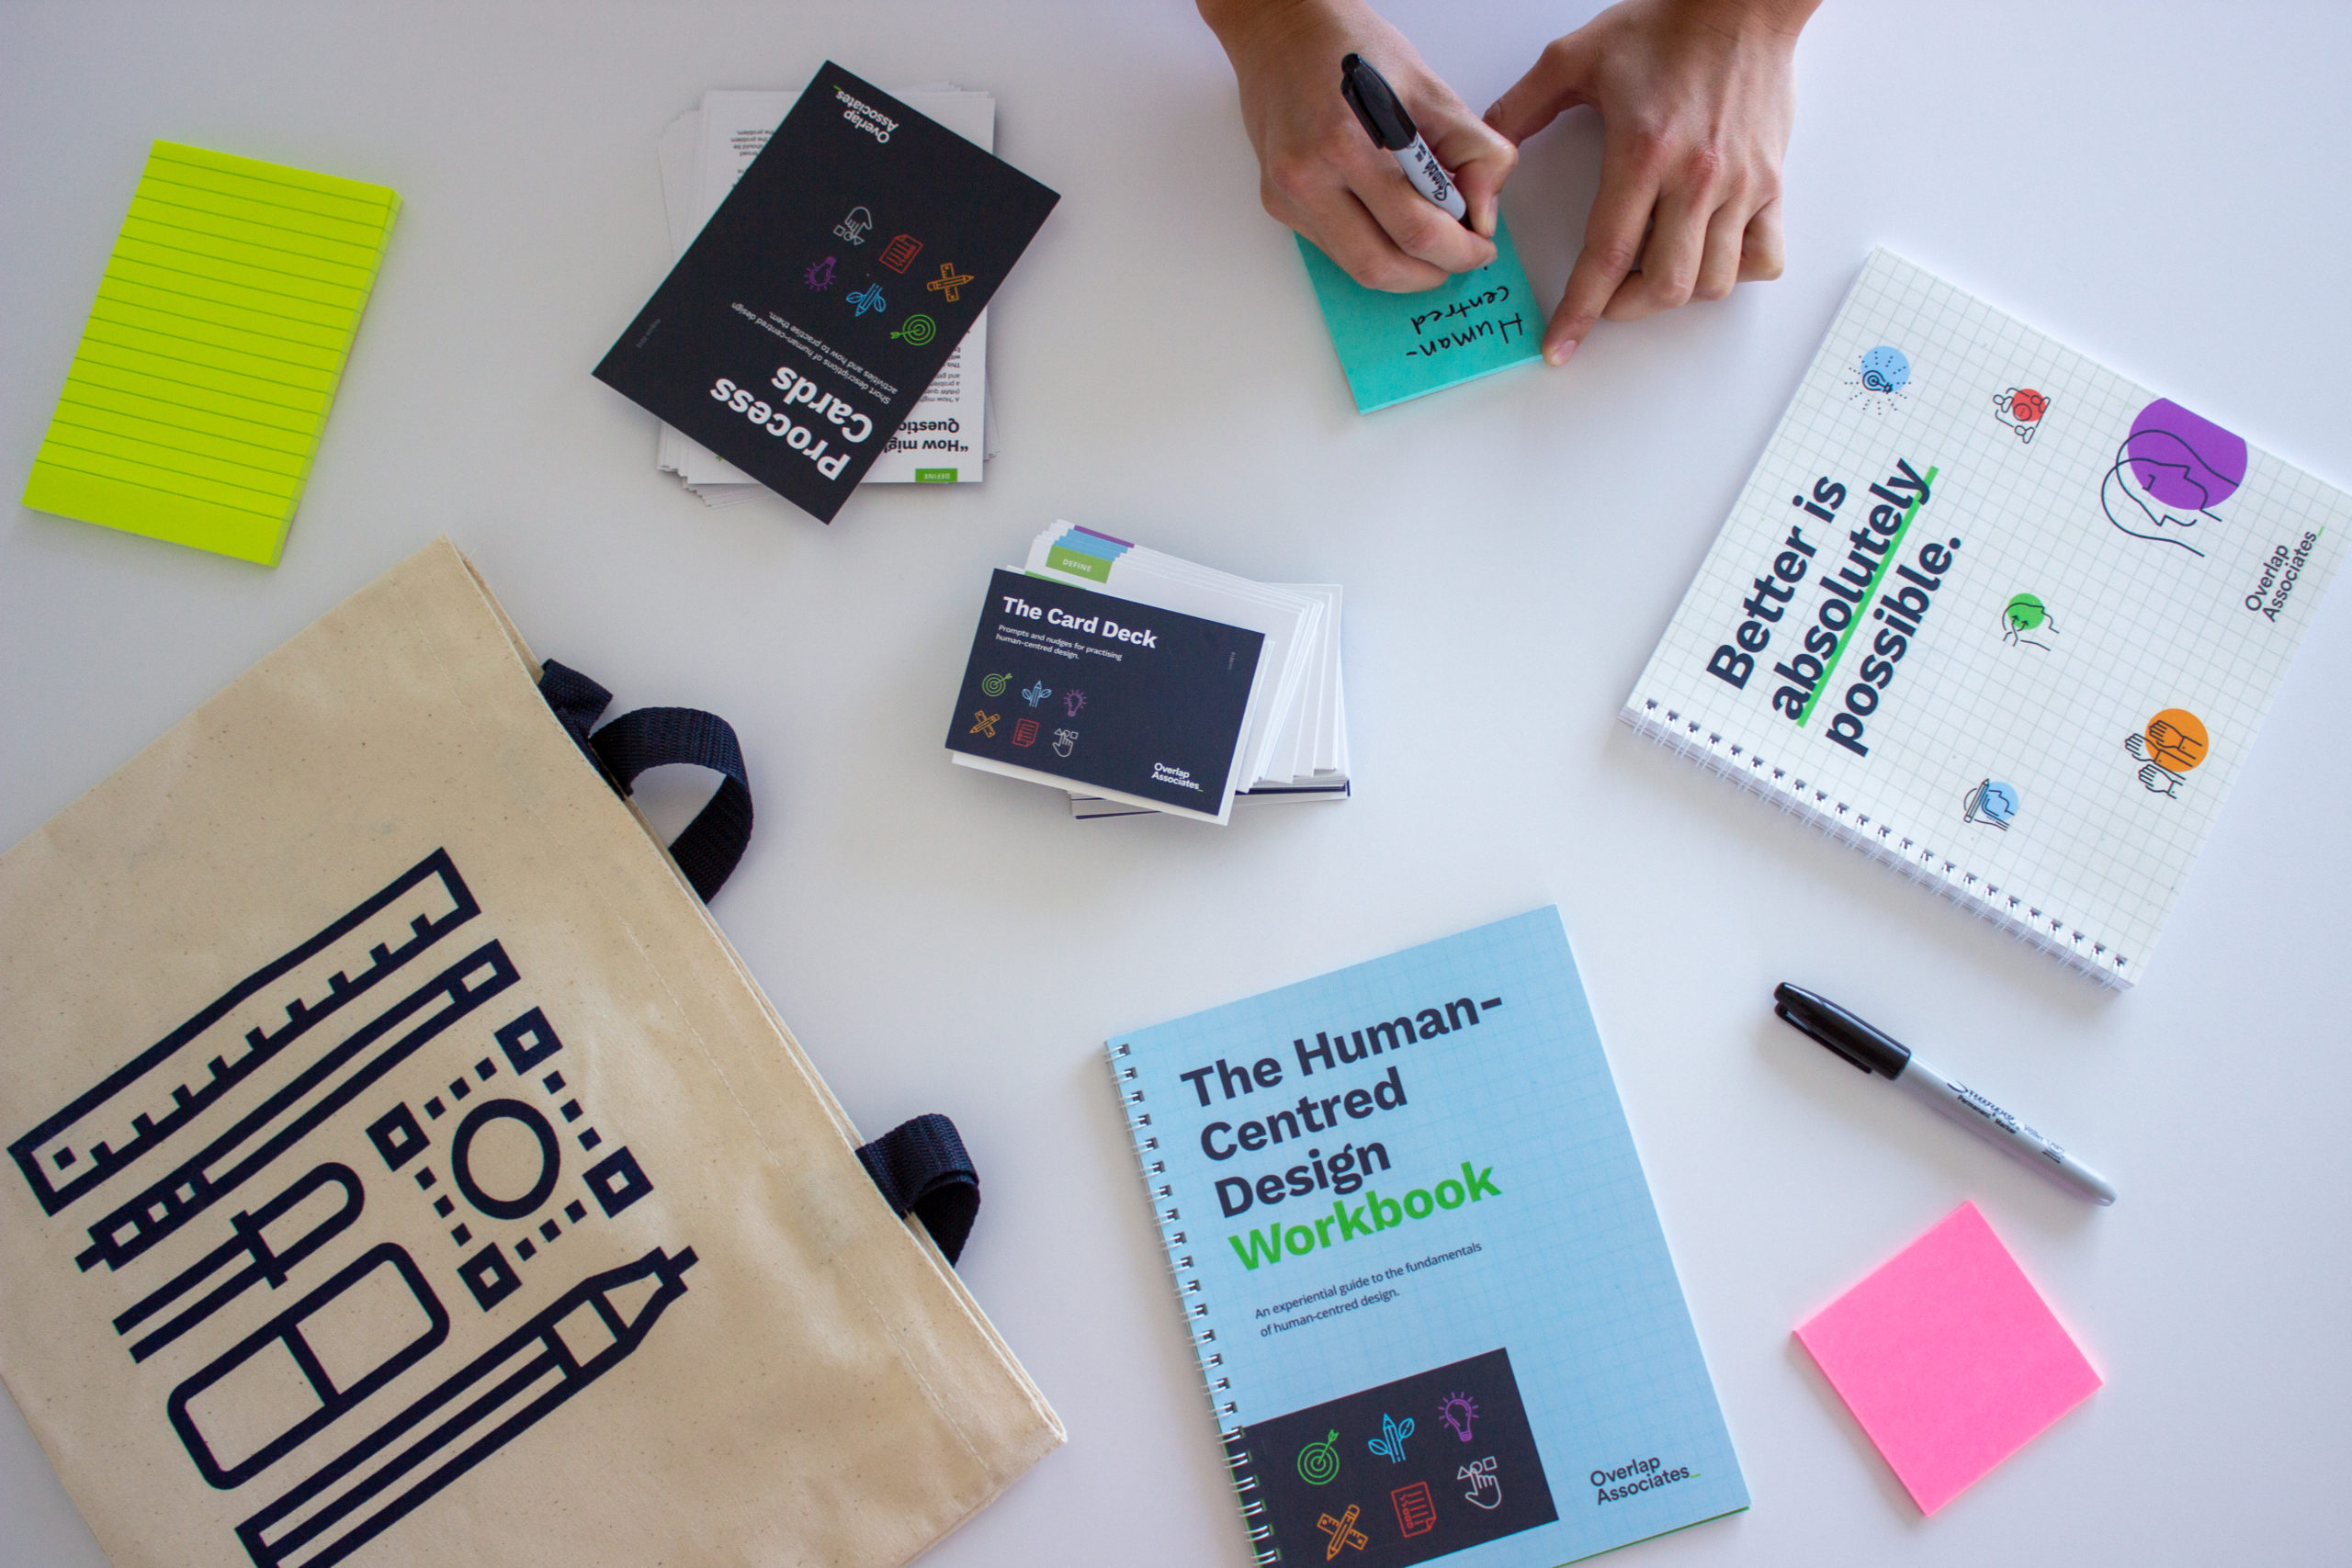 Overlap's human-centred design materials laid out on a desk.